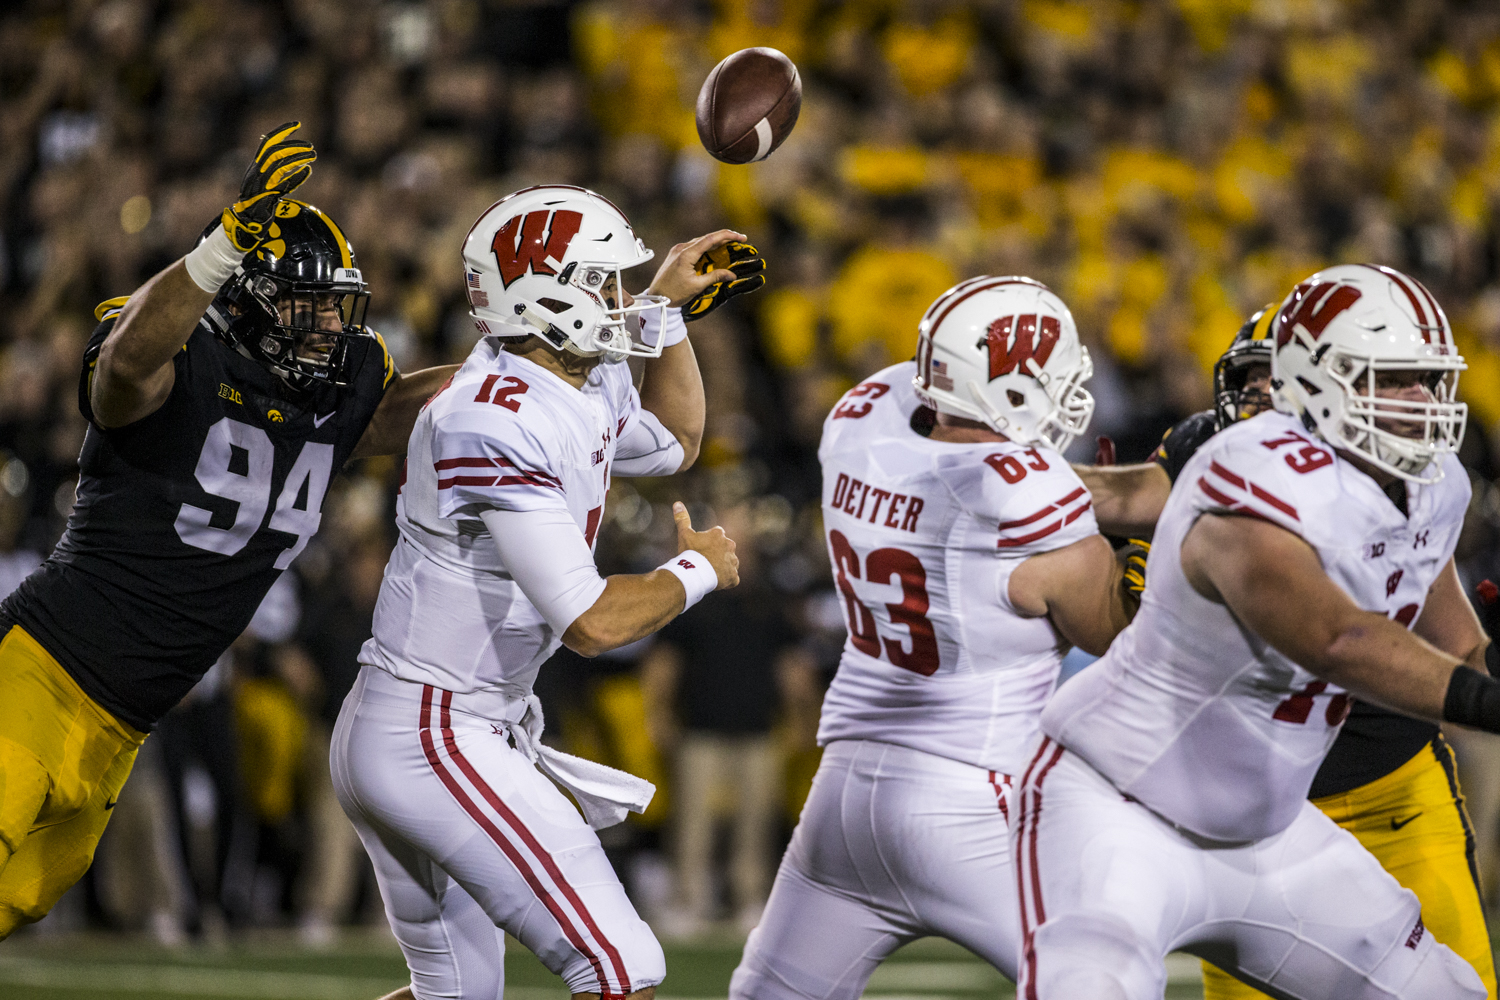 Iowa+defensive+lineman+A.J.+Epenesa+deflects+a+pass+during+Iowa%27s+game+against+Wisconsin+at+Kinnick+Stadium+on+Saturday%2C+September+22%2C+2018.+The+Badgers+defeated+the+Hawkeyes+28-17.